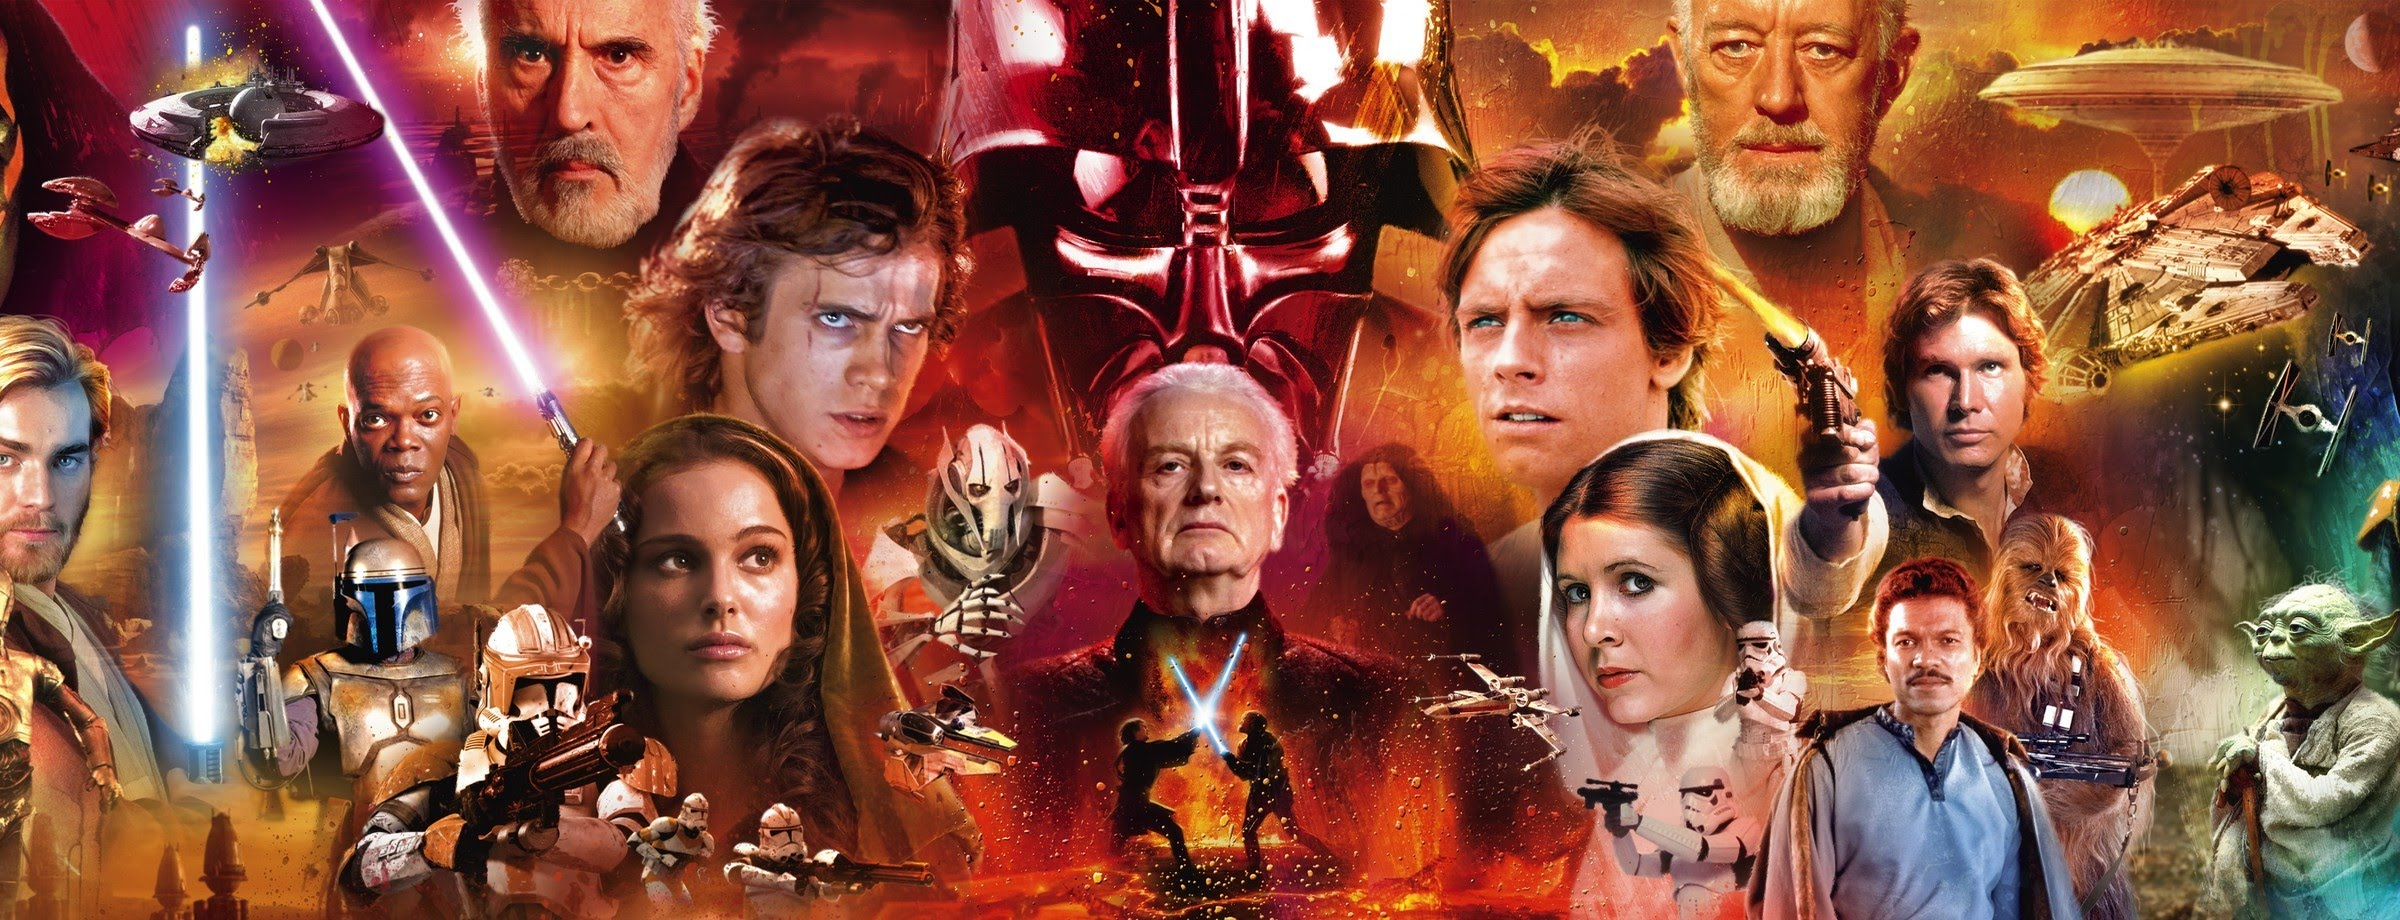 going movie archetypes star wars movie Star wars: the magic of myth all were drawing from archetypes hidden in our subconscious with scary movies on my mind lately.